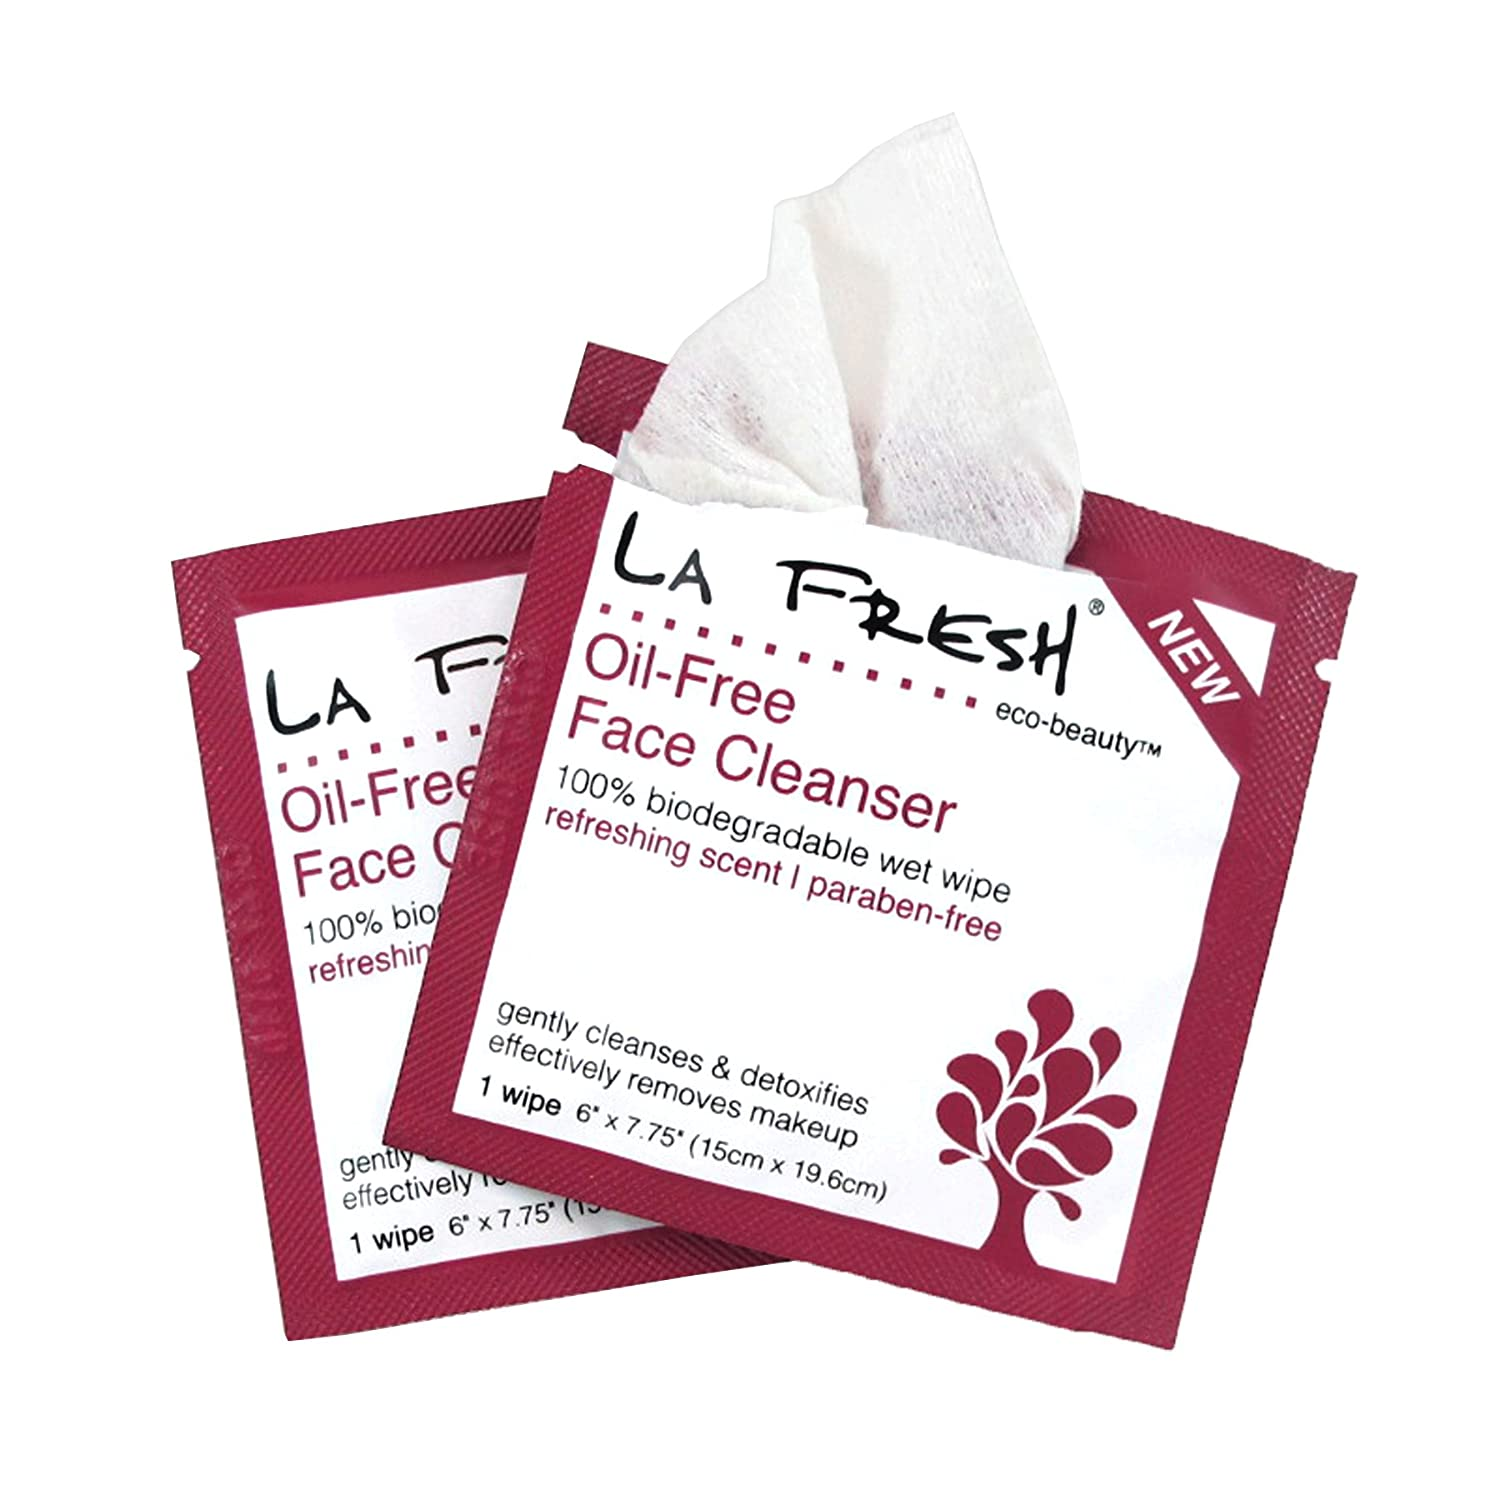 La Fresh Eco Beauty Oil-free Face Cleanser Wipes, Scented, 200 Count крем levissime armony cleanser gel oil free 250 мл